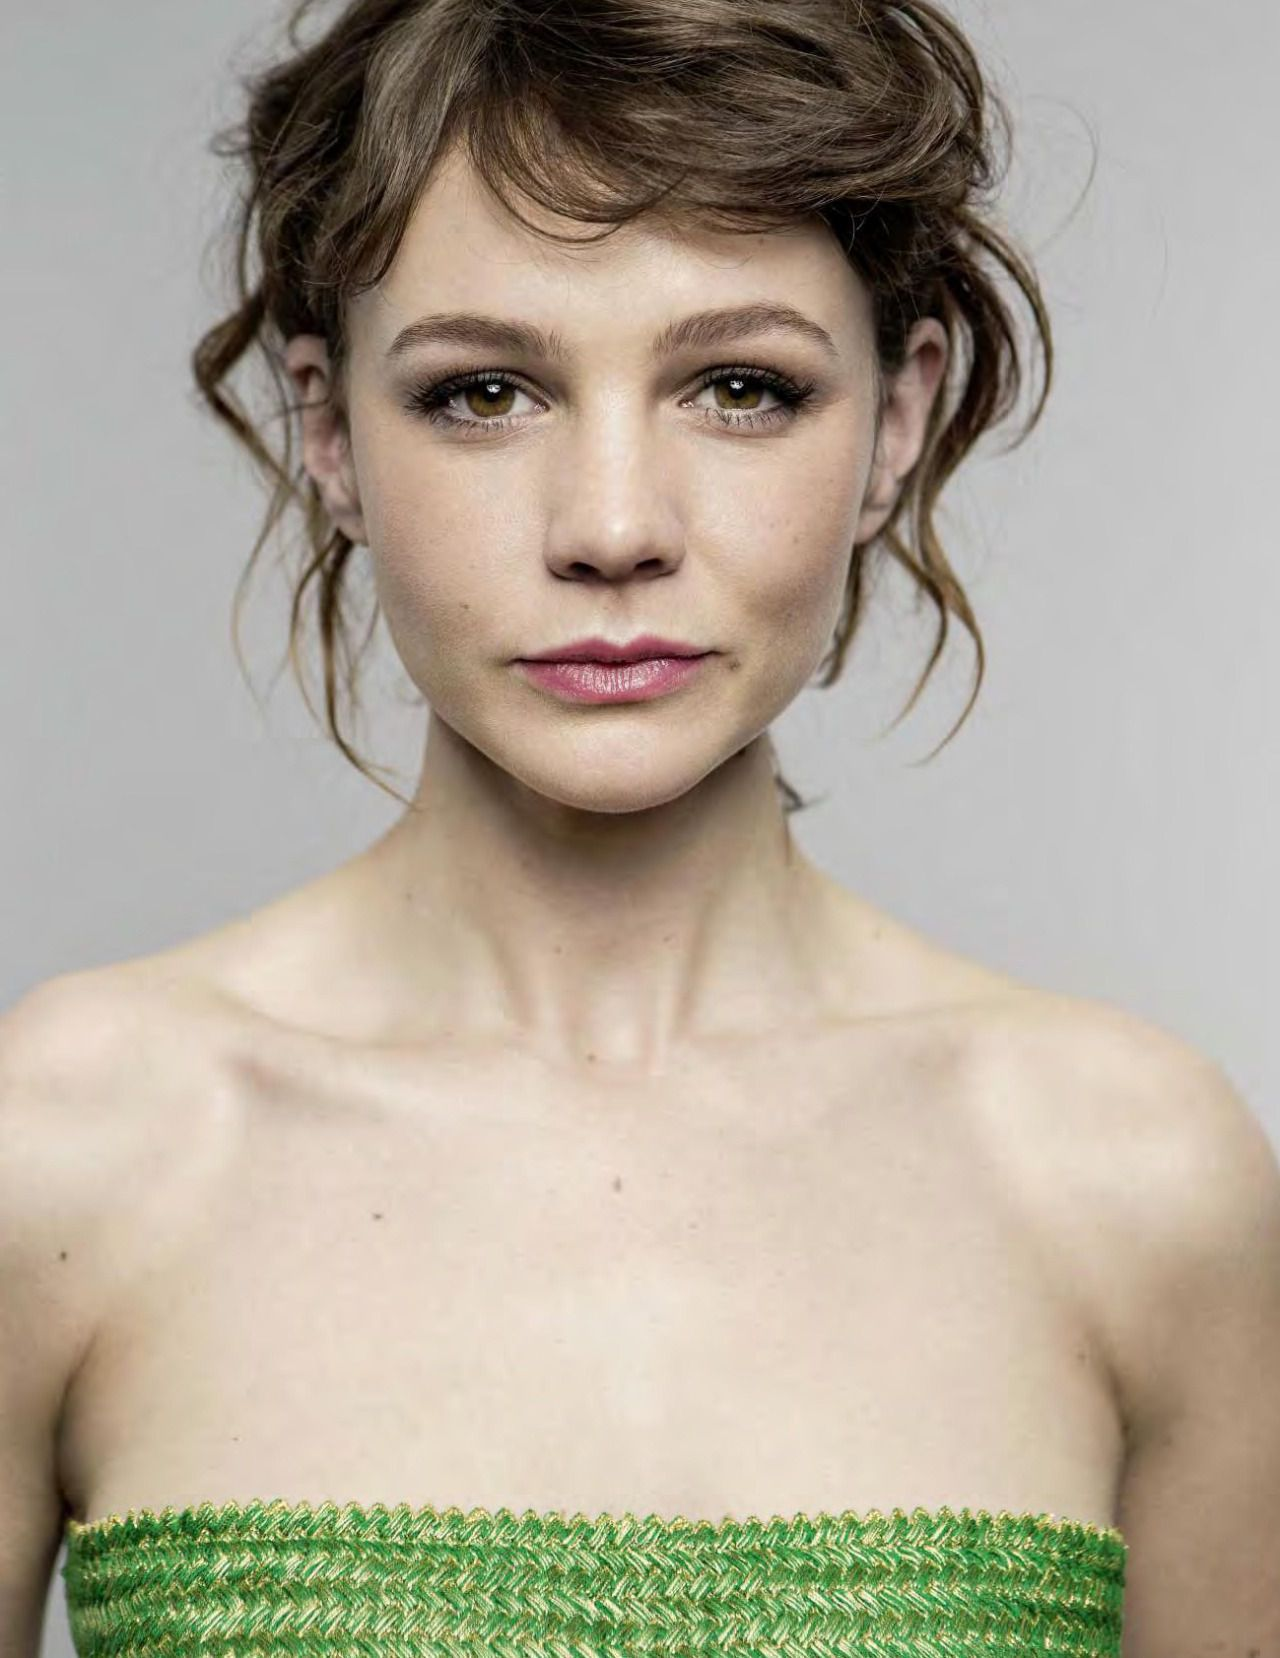 Carey Mulligan (born 1985)